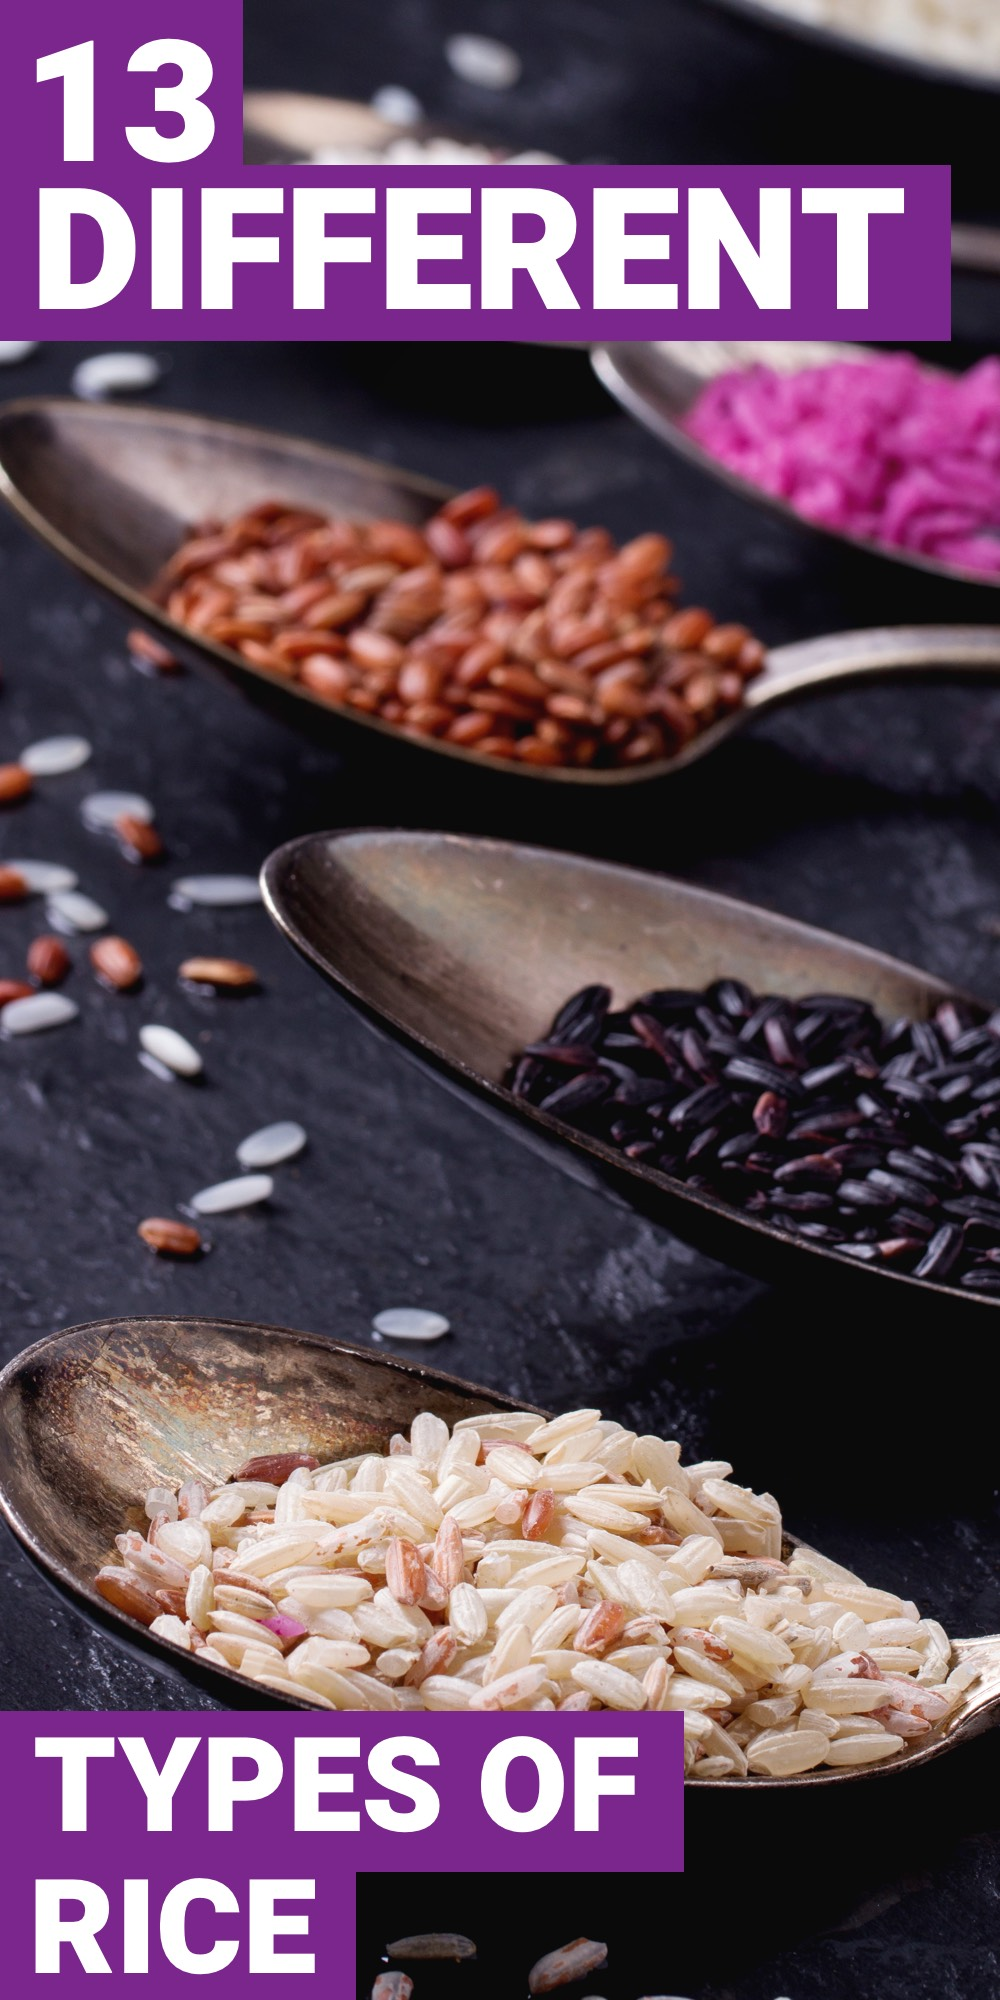 If you're looking for more variety out of your rice, then you need to explore the different types of rice out there. Here are 13 different types of rice you should know about.